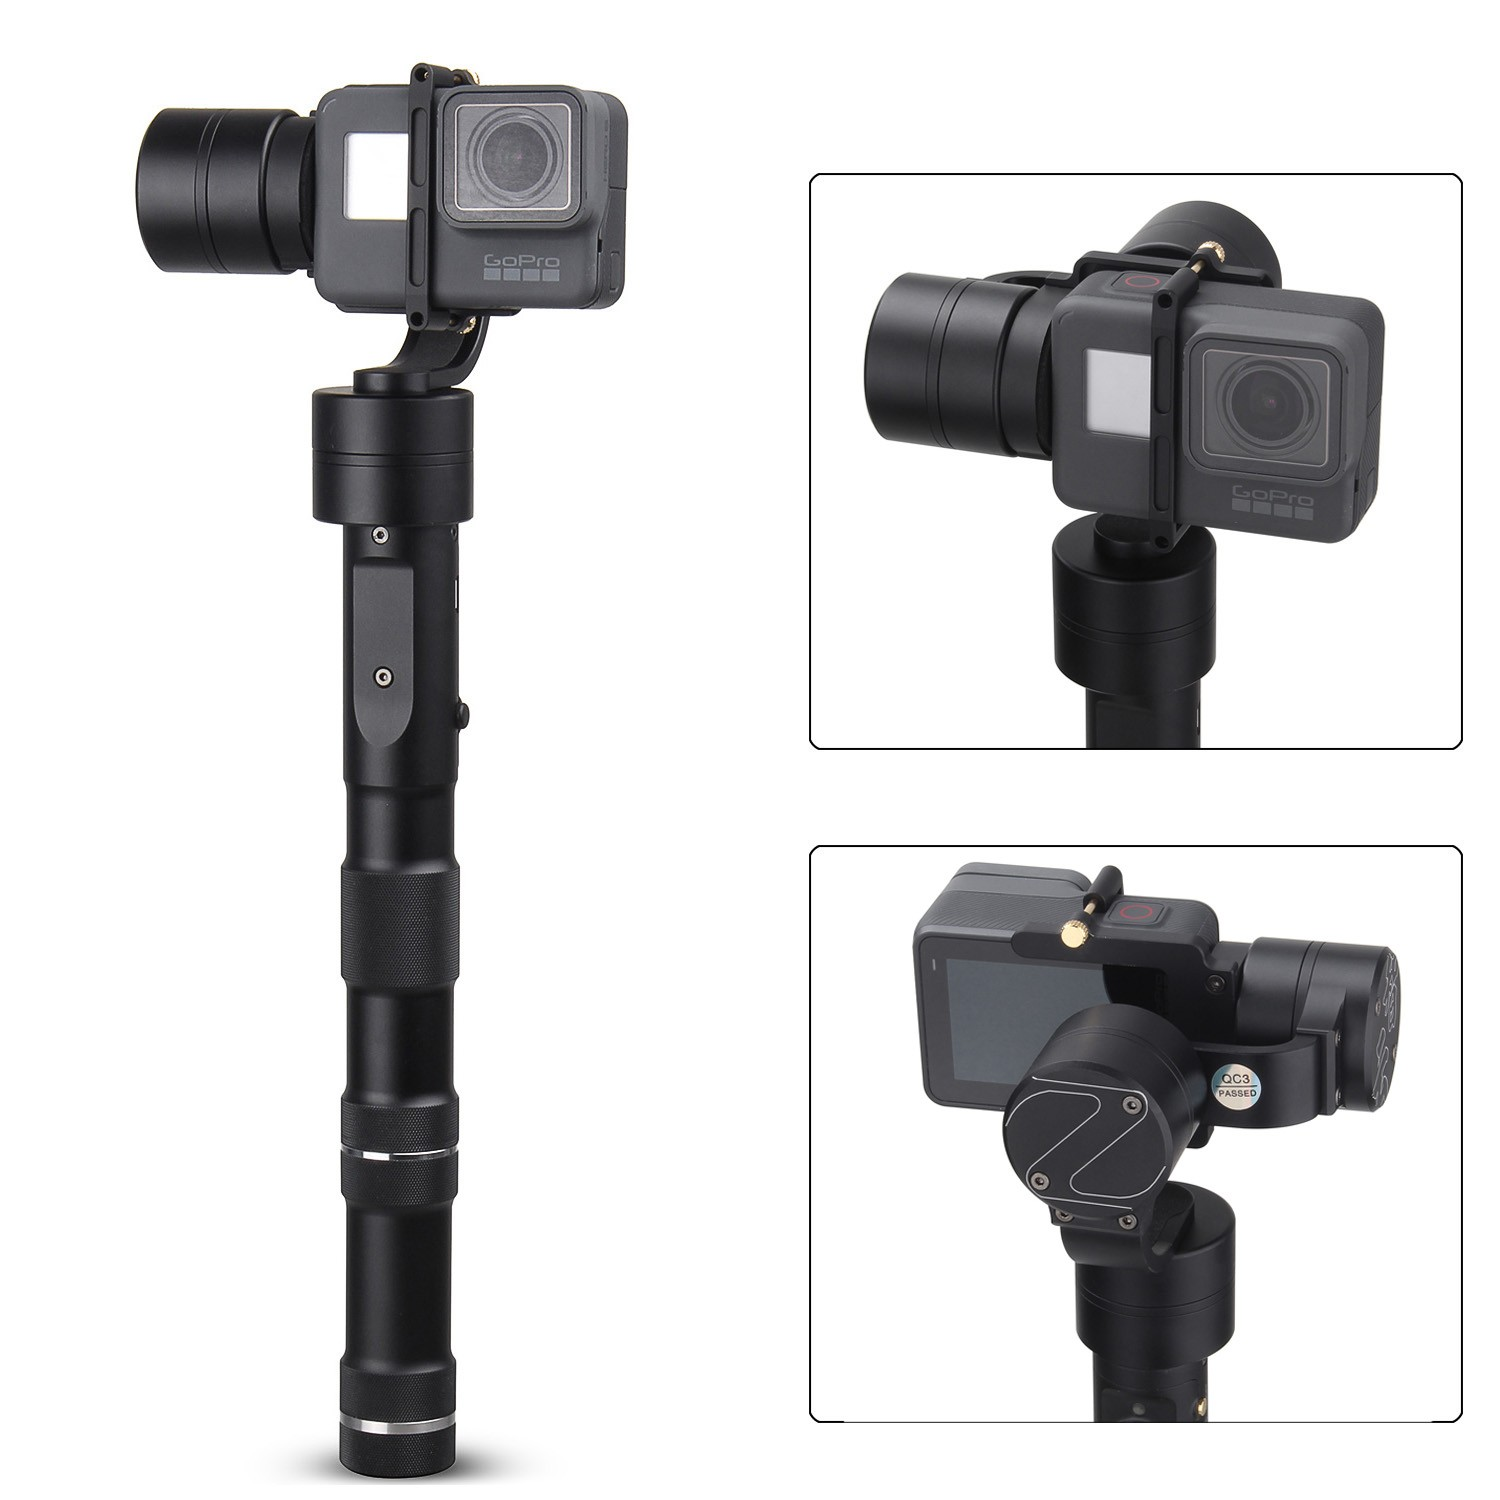 Zhiyun Z1-EVOLUTION 3-Axis Handheld Stabilizer Brushless Gimbal for GoPro Hero 5